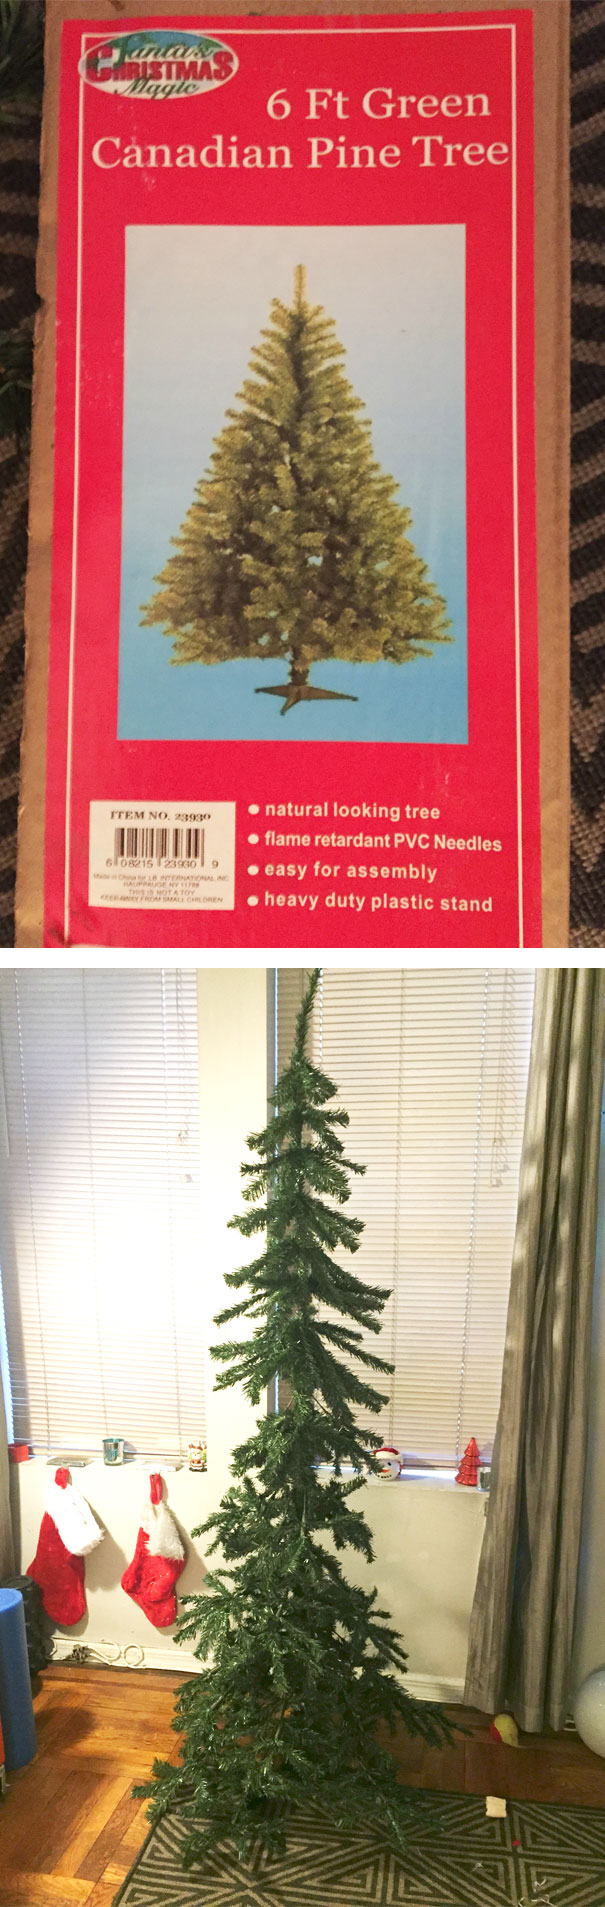 false-advertising-packaging-fails-expectations-vs-reality-23-57209d0f5c3a1__605